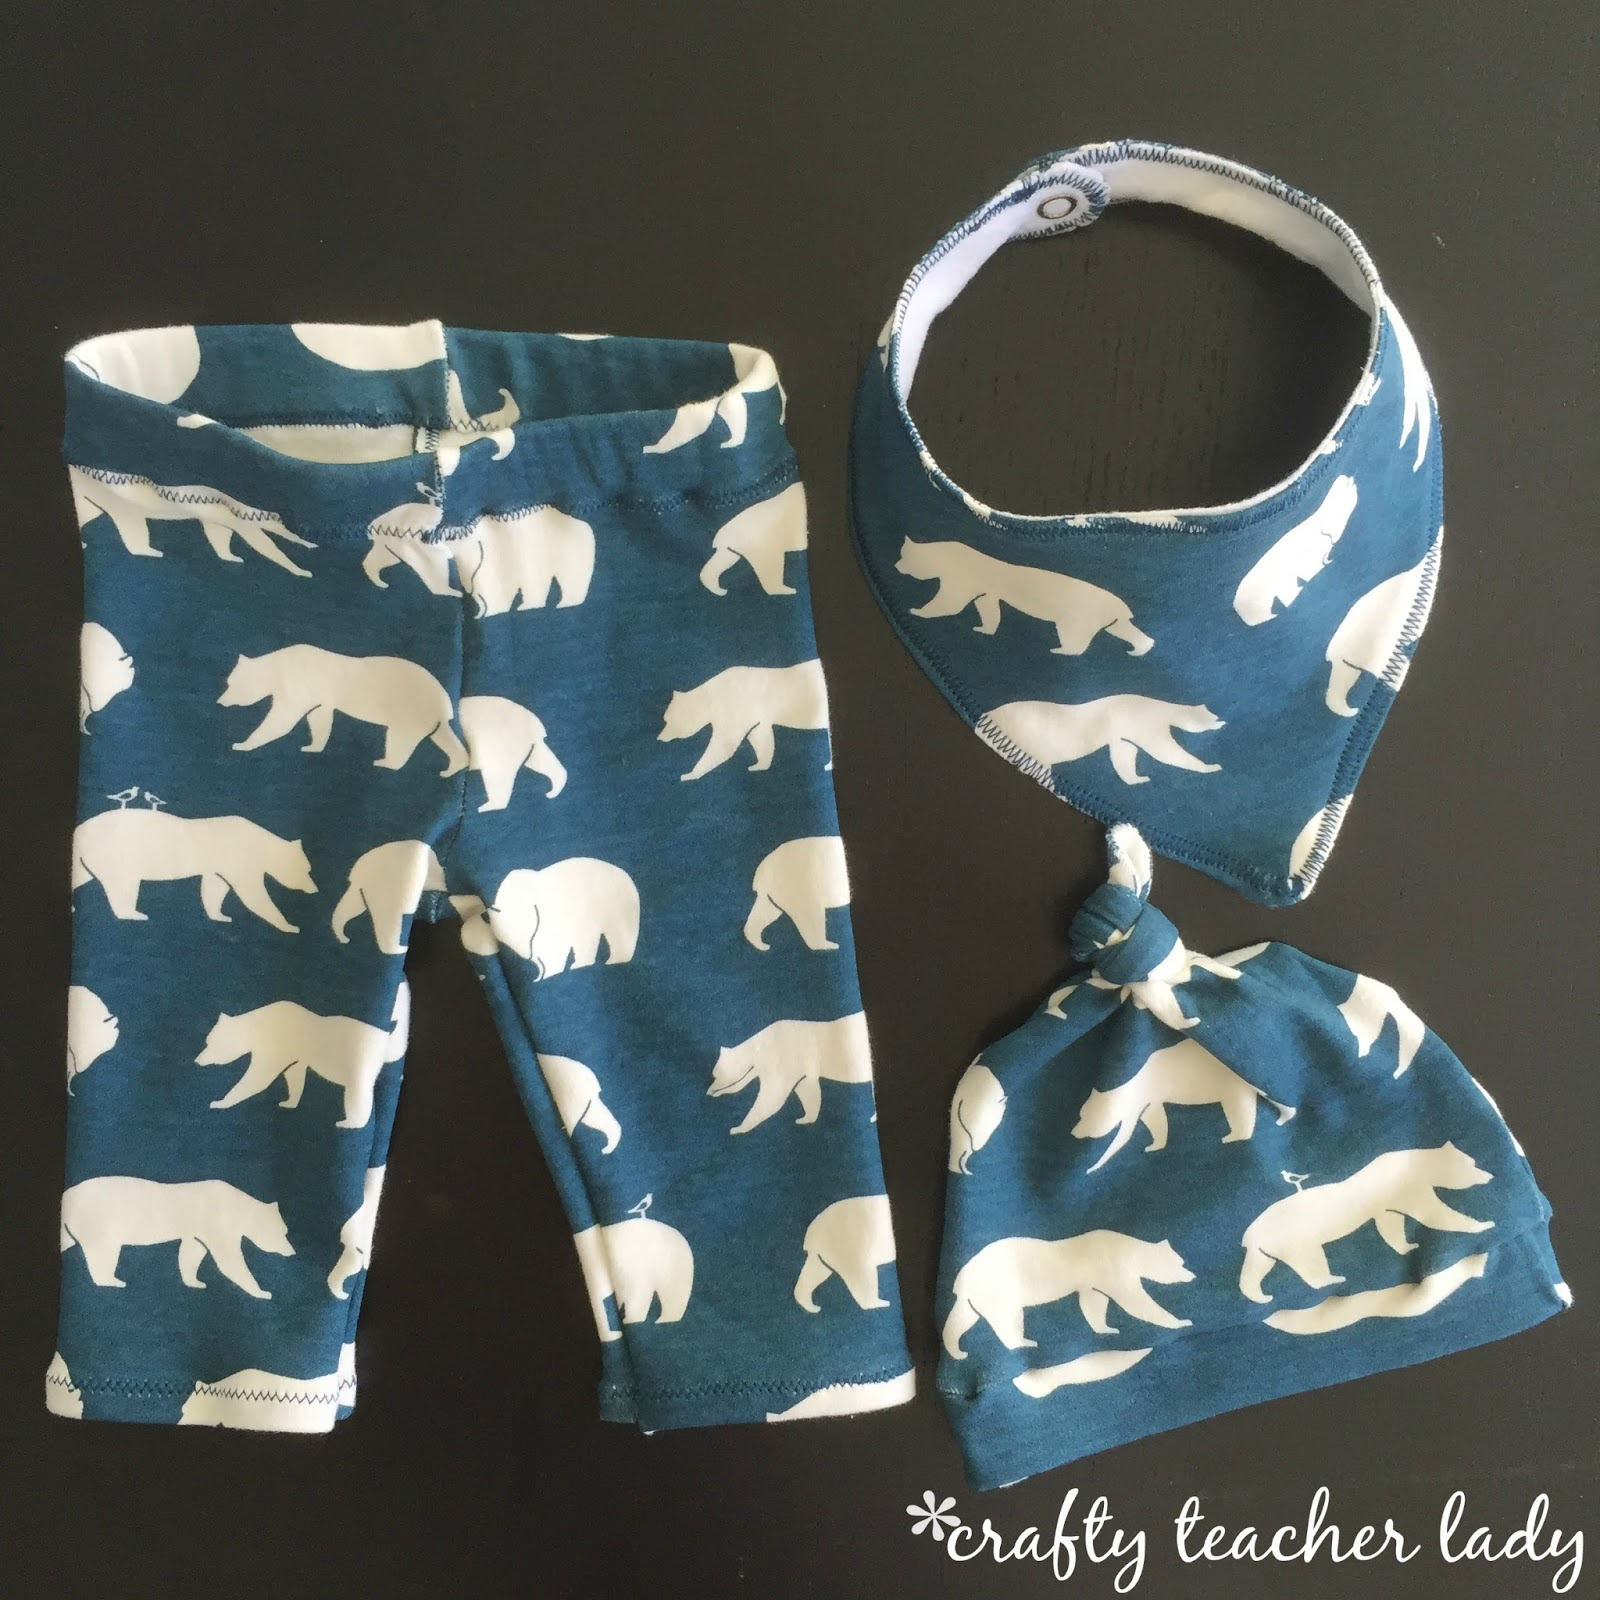 Crafty teacher lady favorite childrens sewing patterns the knotted hat pattern can be found here the bandana bib pattern can be found here and the baby leggings pattern can be found here jeuxipadfo Images